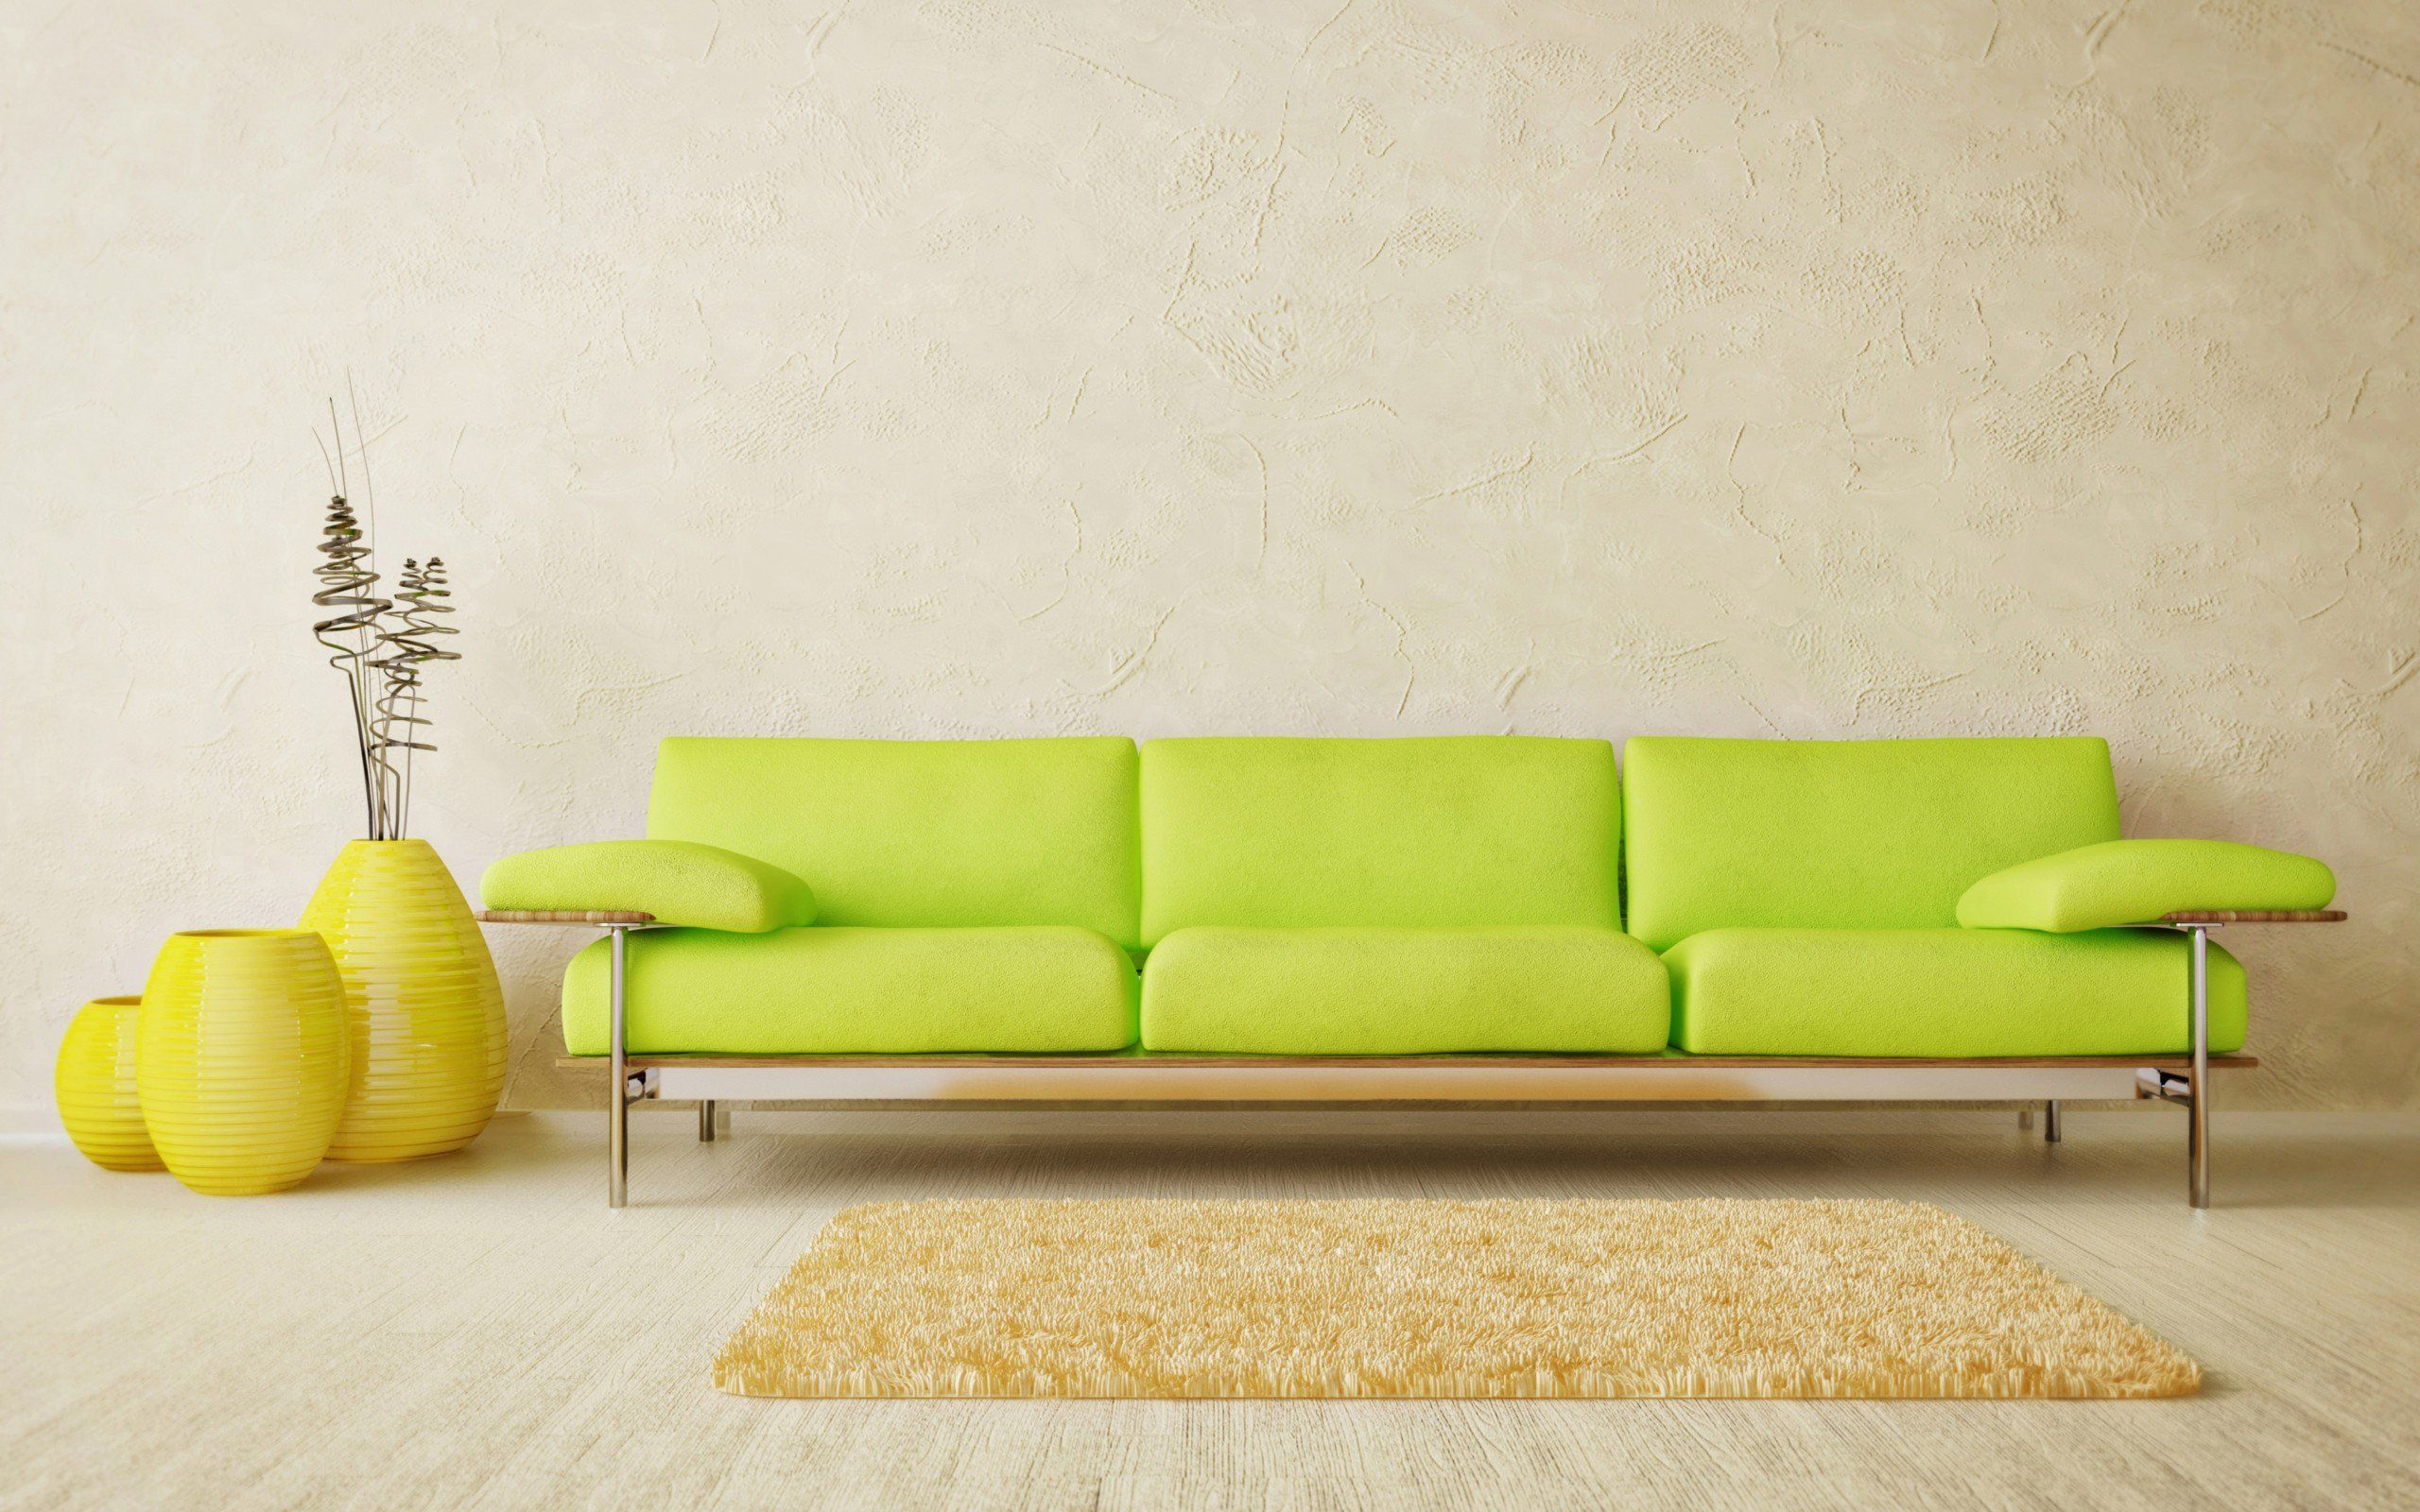 Sofa Quotes Green Sofa Green Sofa And Yellow Carpet In Room 2560 X 1600